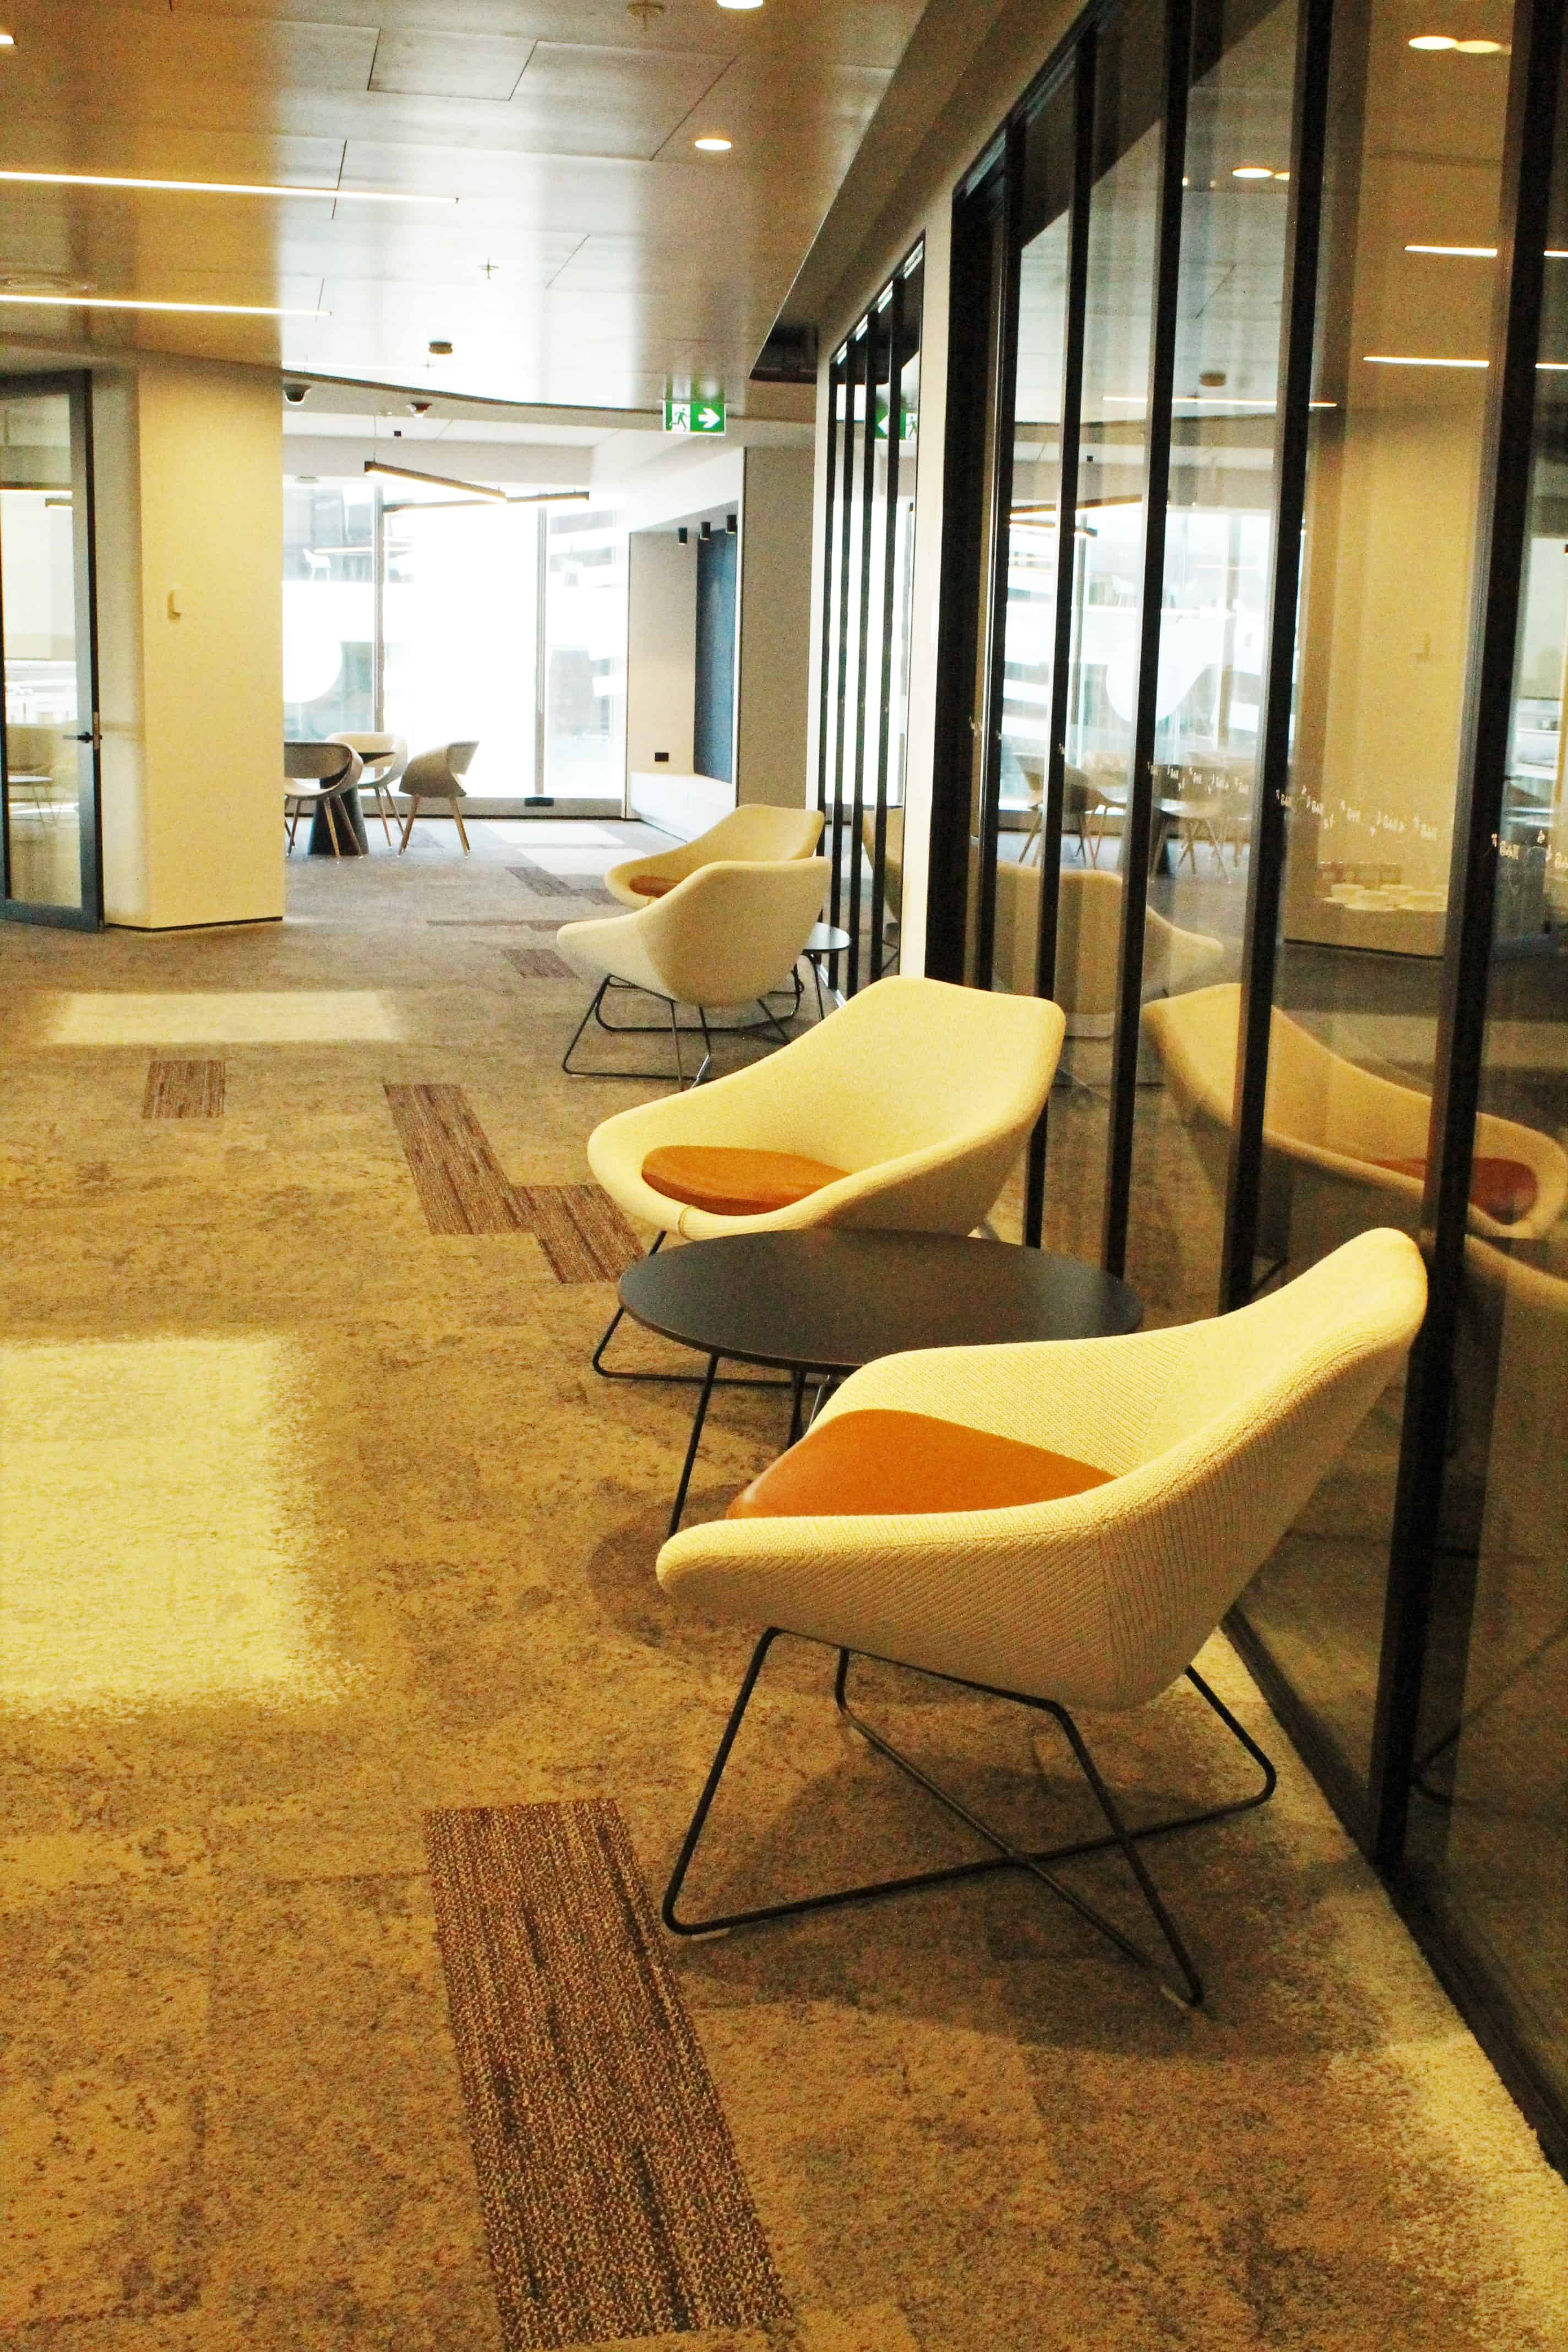 IBM office in Auckland workplace hallways design with tables and chairs and glass walls